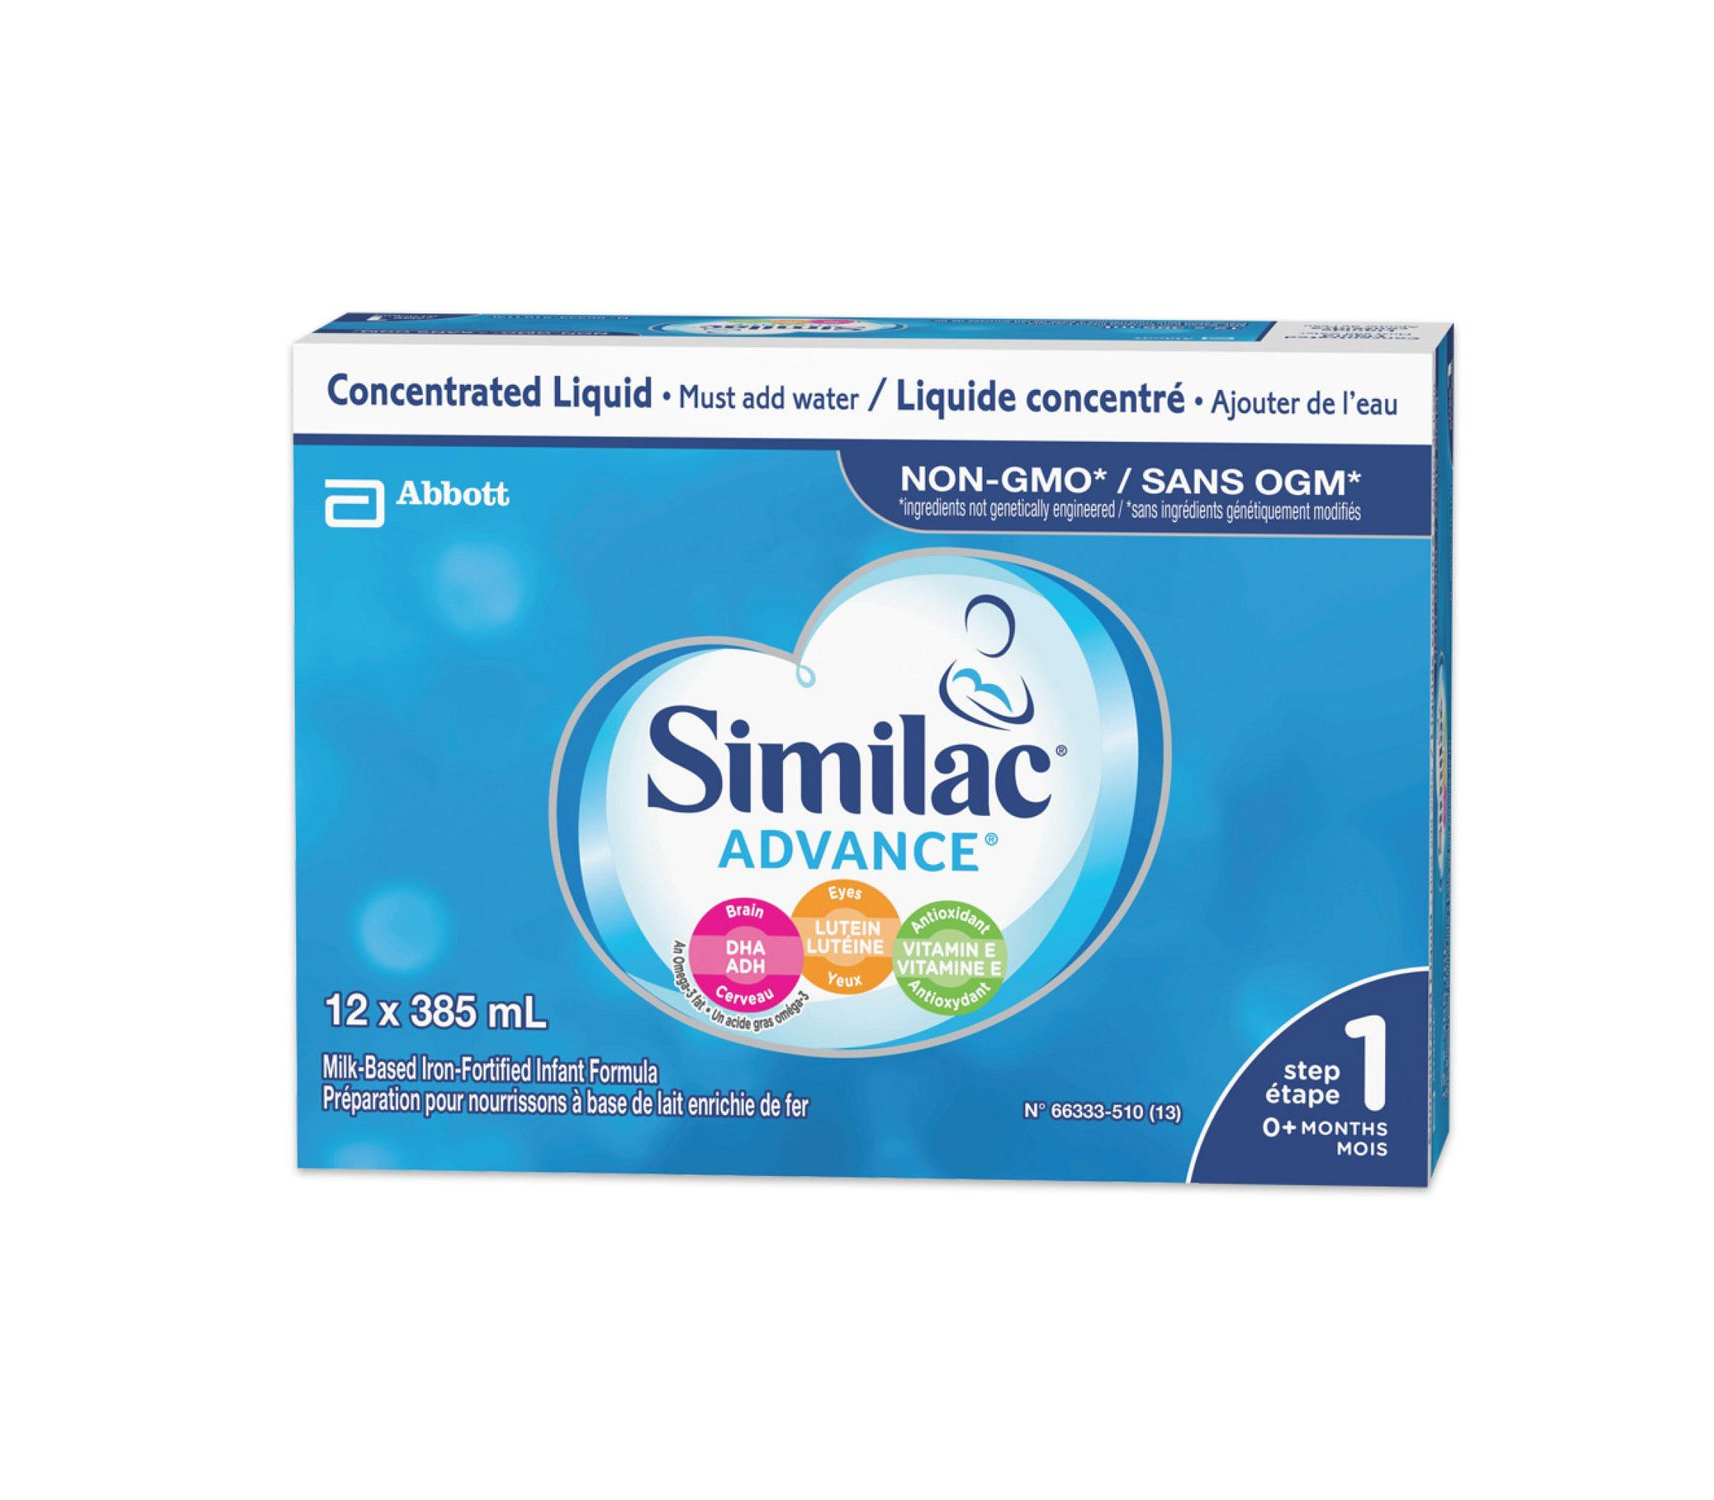 Similac Advance Concentrate 12x385mL